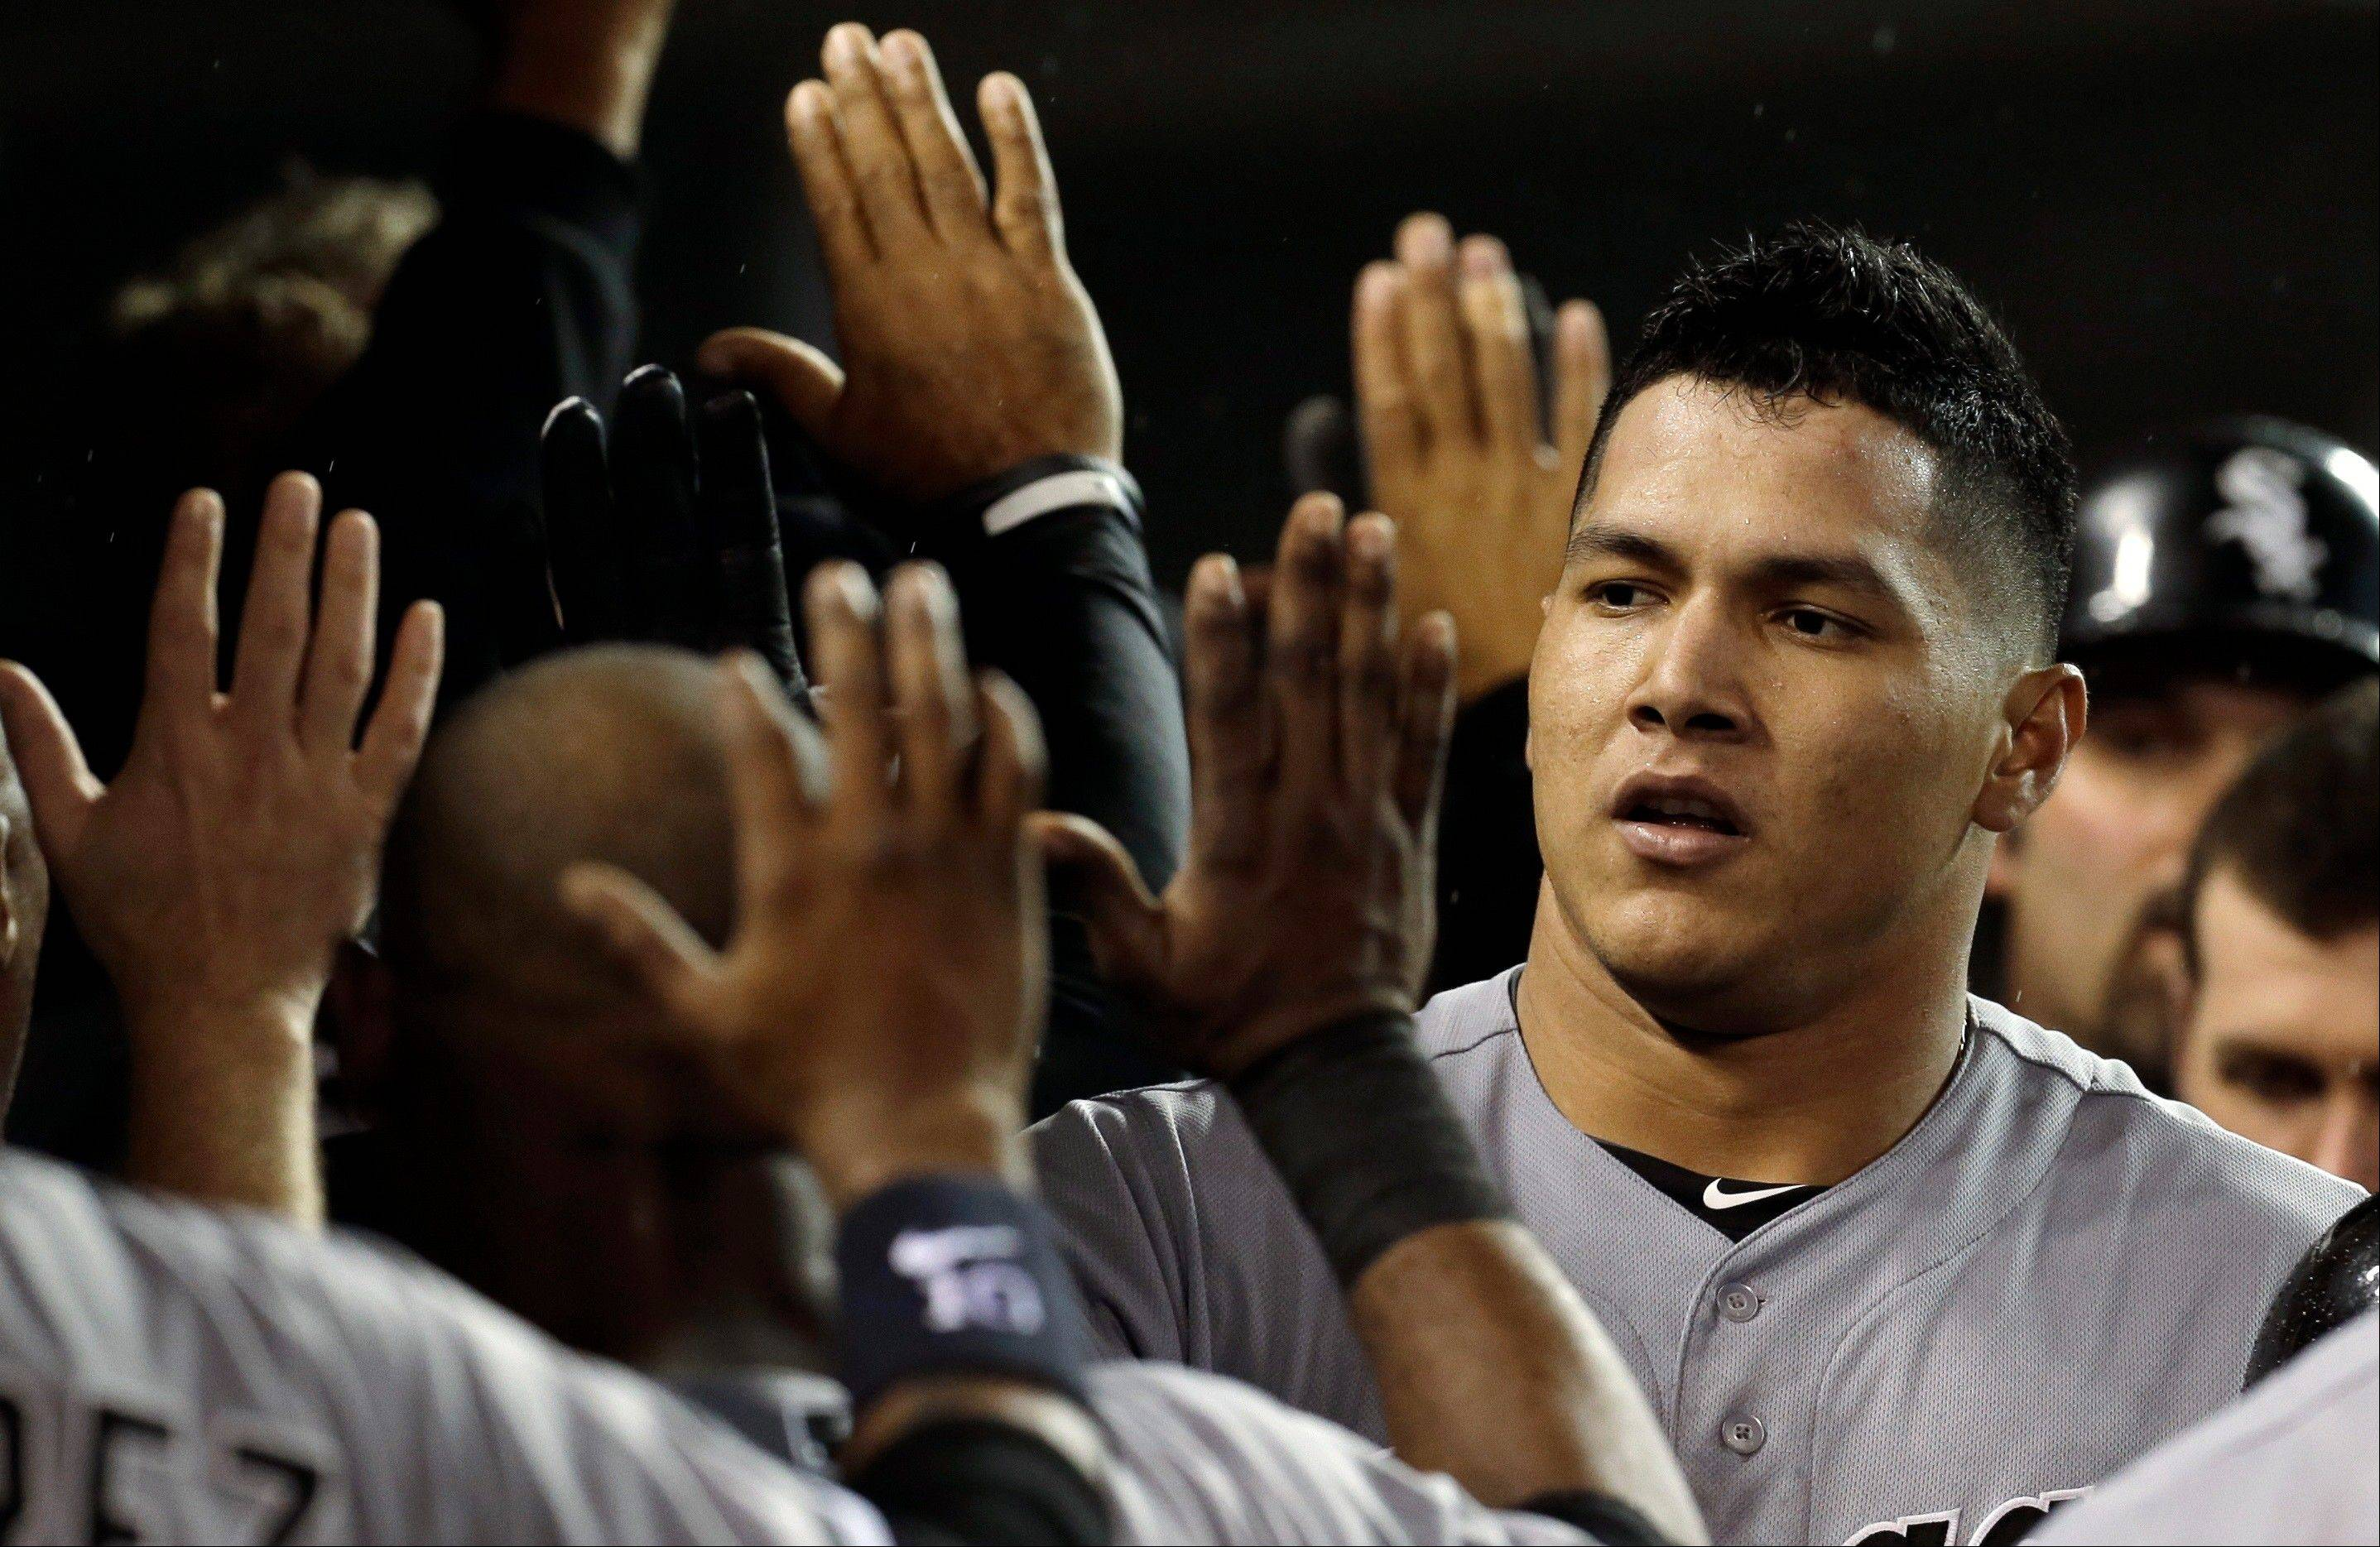 Chicago White Sox's Avisail Garcia celebrates his two-run home run against the Detroit Tigers in the fourth inning of a baseball game in Detroit, Friday, Sept. 20, 2013.